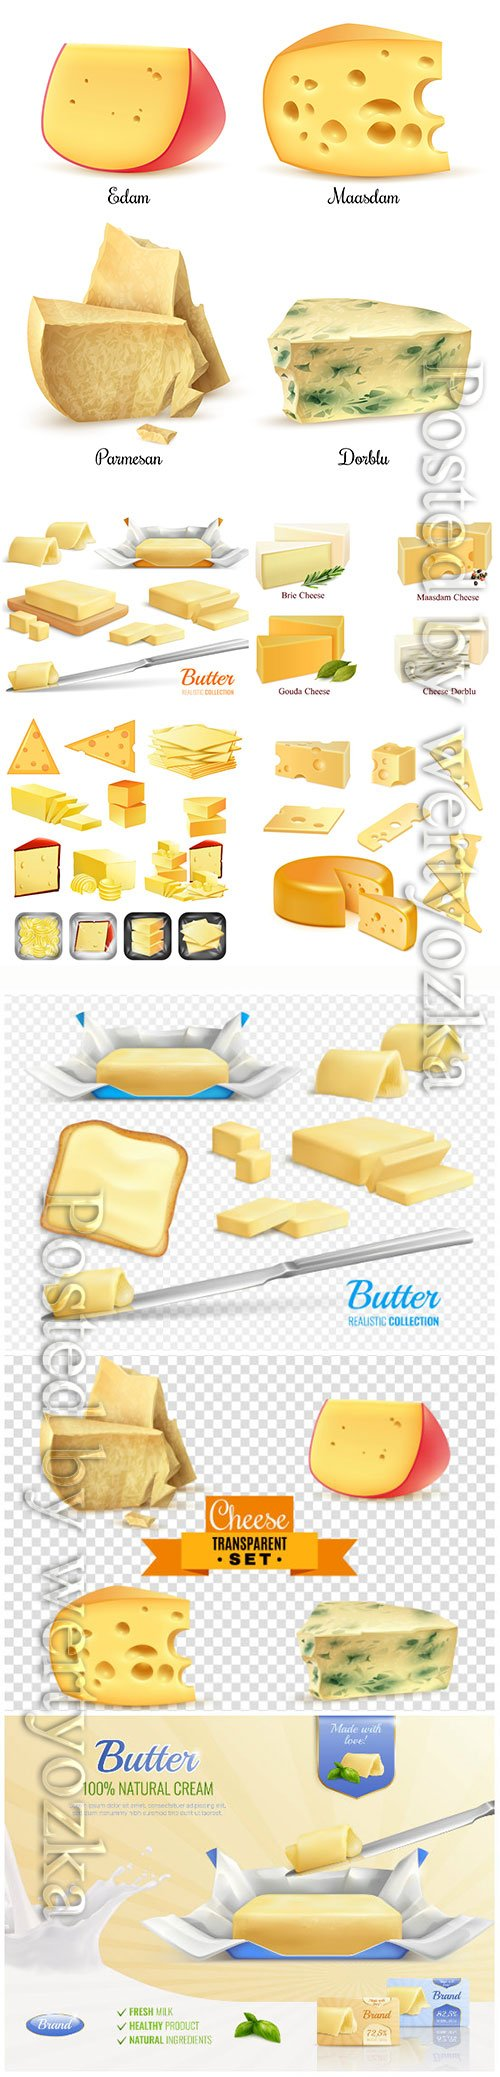 Dairy, products, cheese, butter, vector